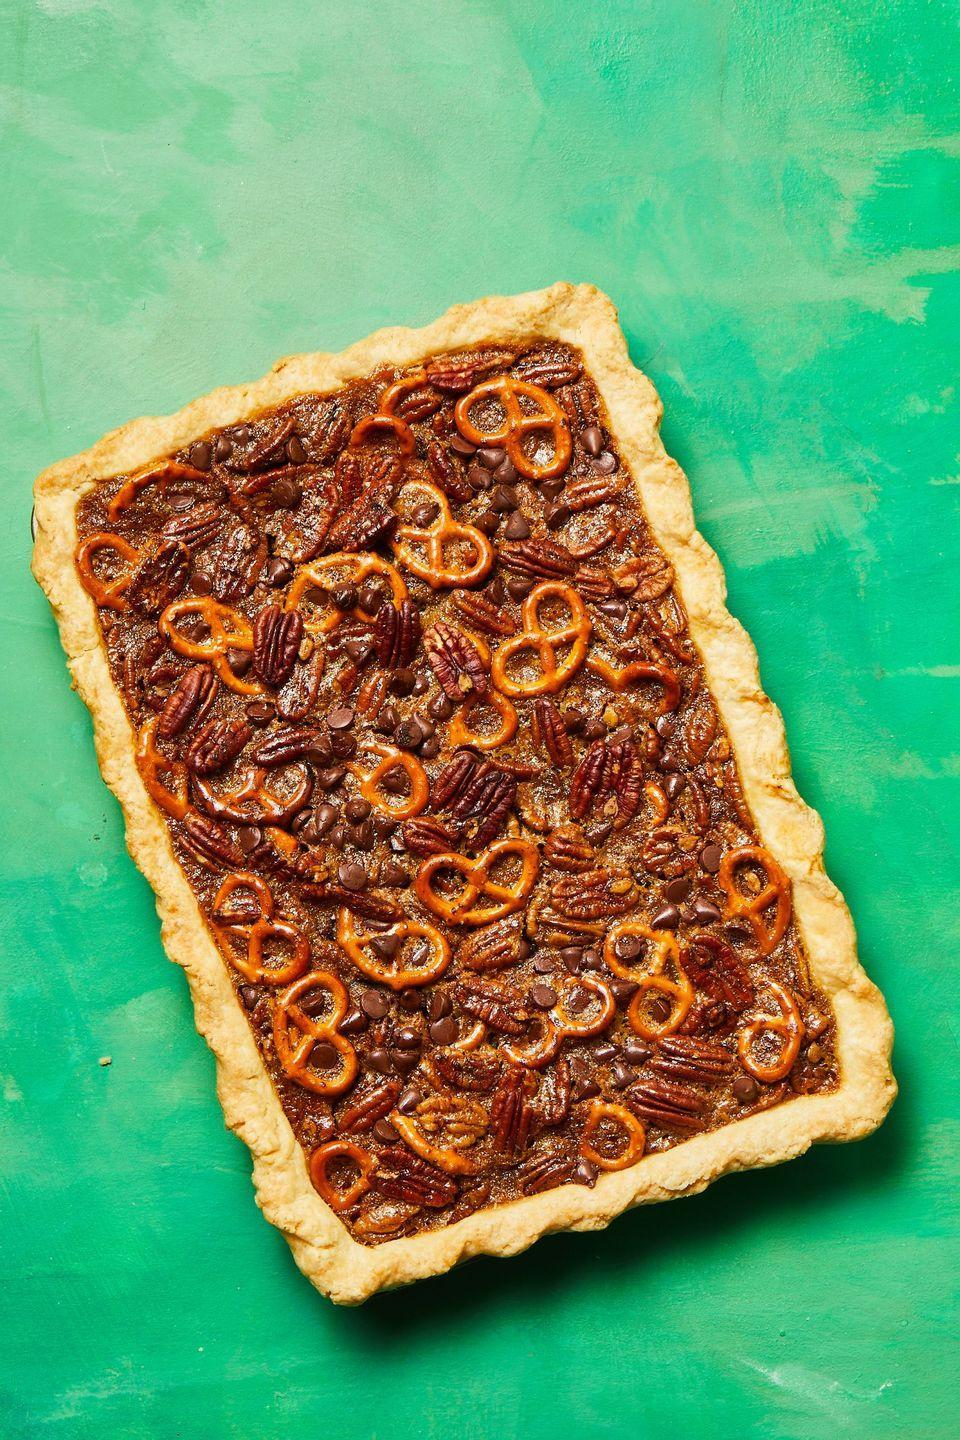 "<p>Salty pretzels, sweet chocolate chips, and rich pecans make a mouthwatering combo that's even better with a splash of bourbon stirred into the batter.</p><p><strong><em><a href=""https://www.womansday.com/food-recipes/a34145910/pretzel-chocolate-pecan-pie-bars-recipe/"" rel=""nofollow noopener"" target=""_blank"" data-ylk=""slk:Get the Pretzel-Chocolate Pecan Pie Bars recipe."" class=""link rapid-noclick-resp"">Get the Pretzel-Chocolate Pecan Pie Bars recipe. </a></em></strong></p>"